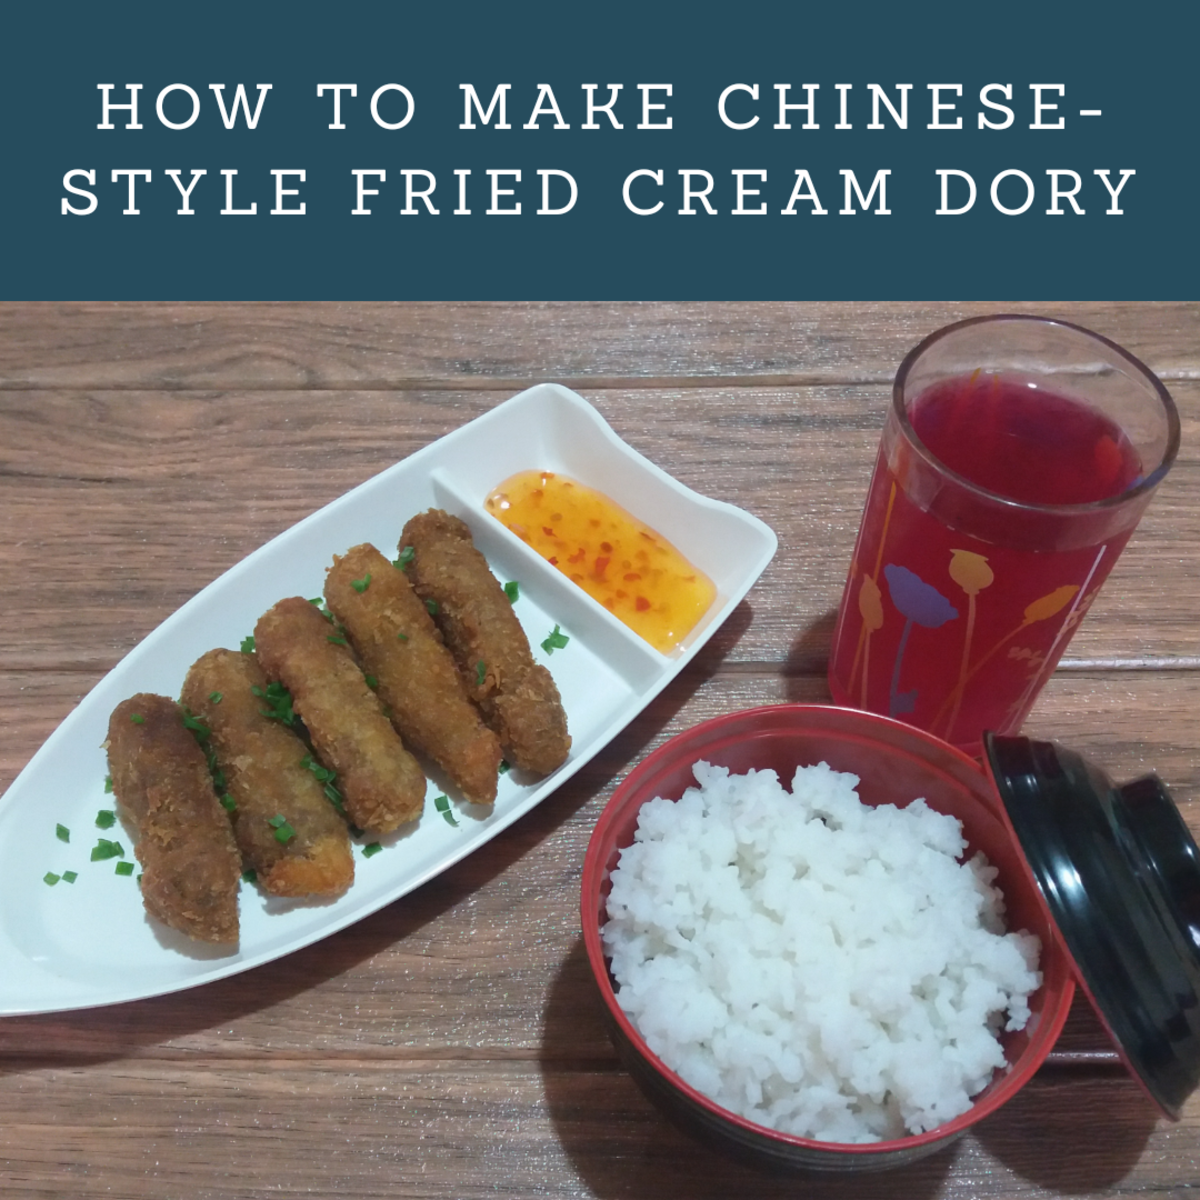 Learn how to make Chinese-style fried cream dory